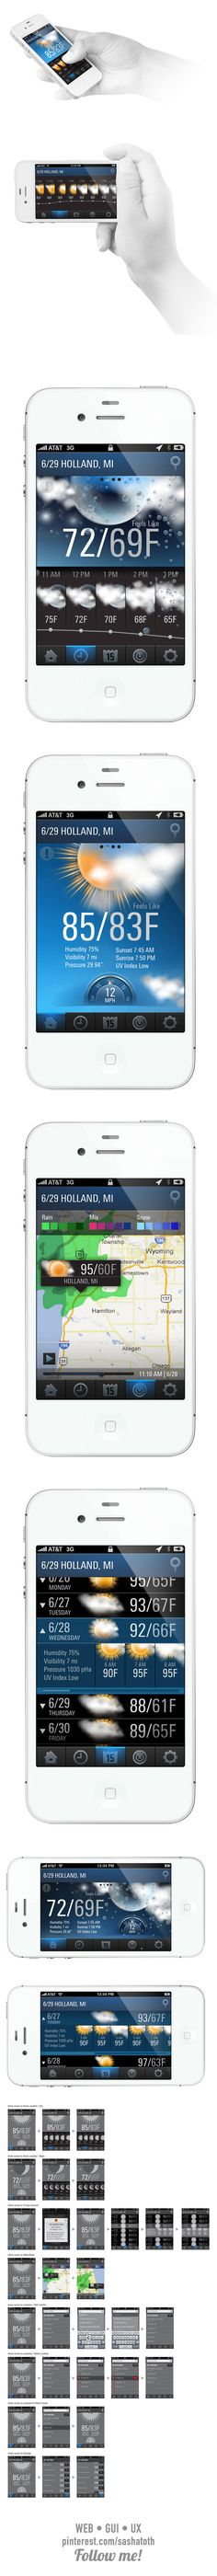 Weather App for iPhone *** This weather application concept for iPhone was developed by Tiger Studio to provide a simple but beautiful interface for any user level. In a world where weather conditions are changing moment to moment, it's important to have a good and reliable assistant. by Yana Foltice, via Behance